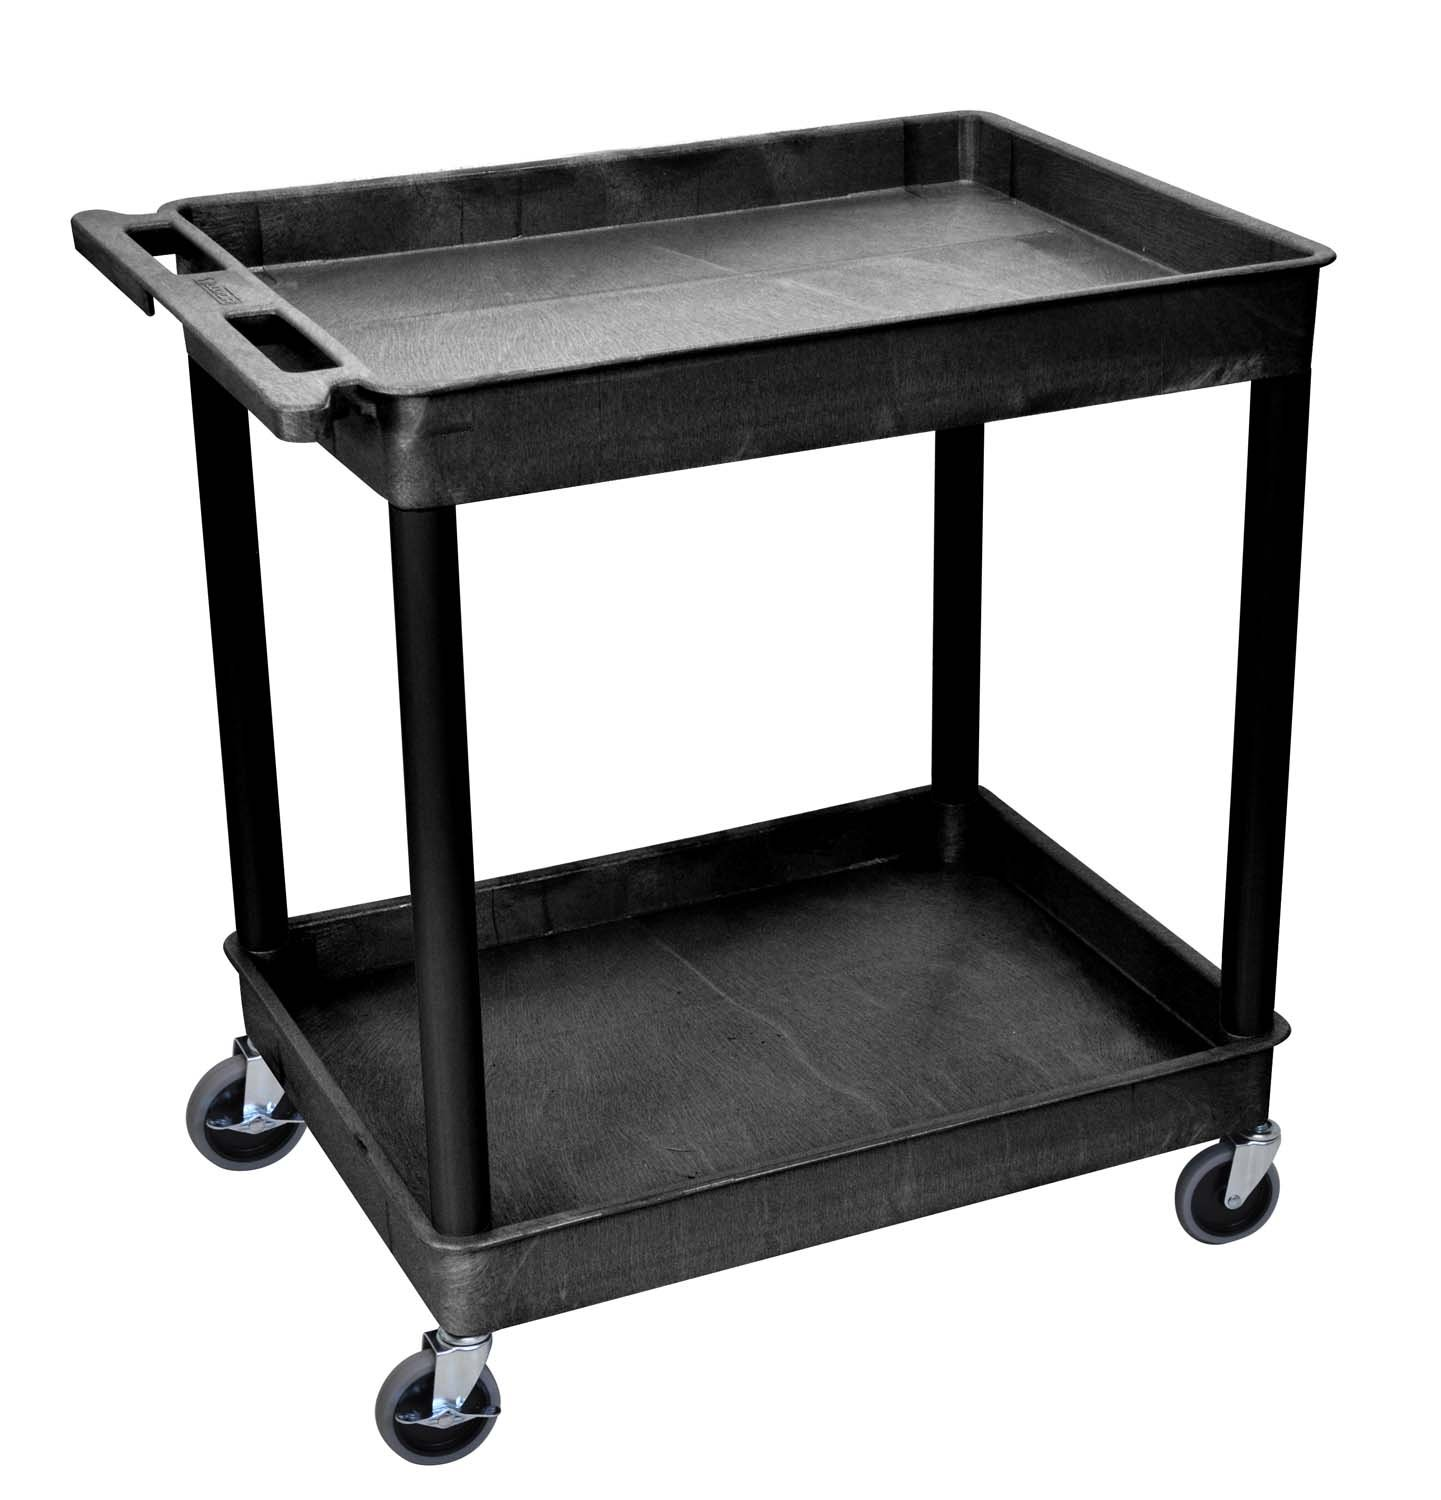 Luxor TC11-B 2 Large Tub Shelves Rolling Utility Cart 32'' W x 24'' D x 37.5'' H - Black